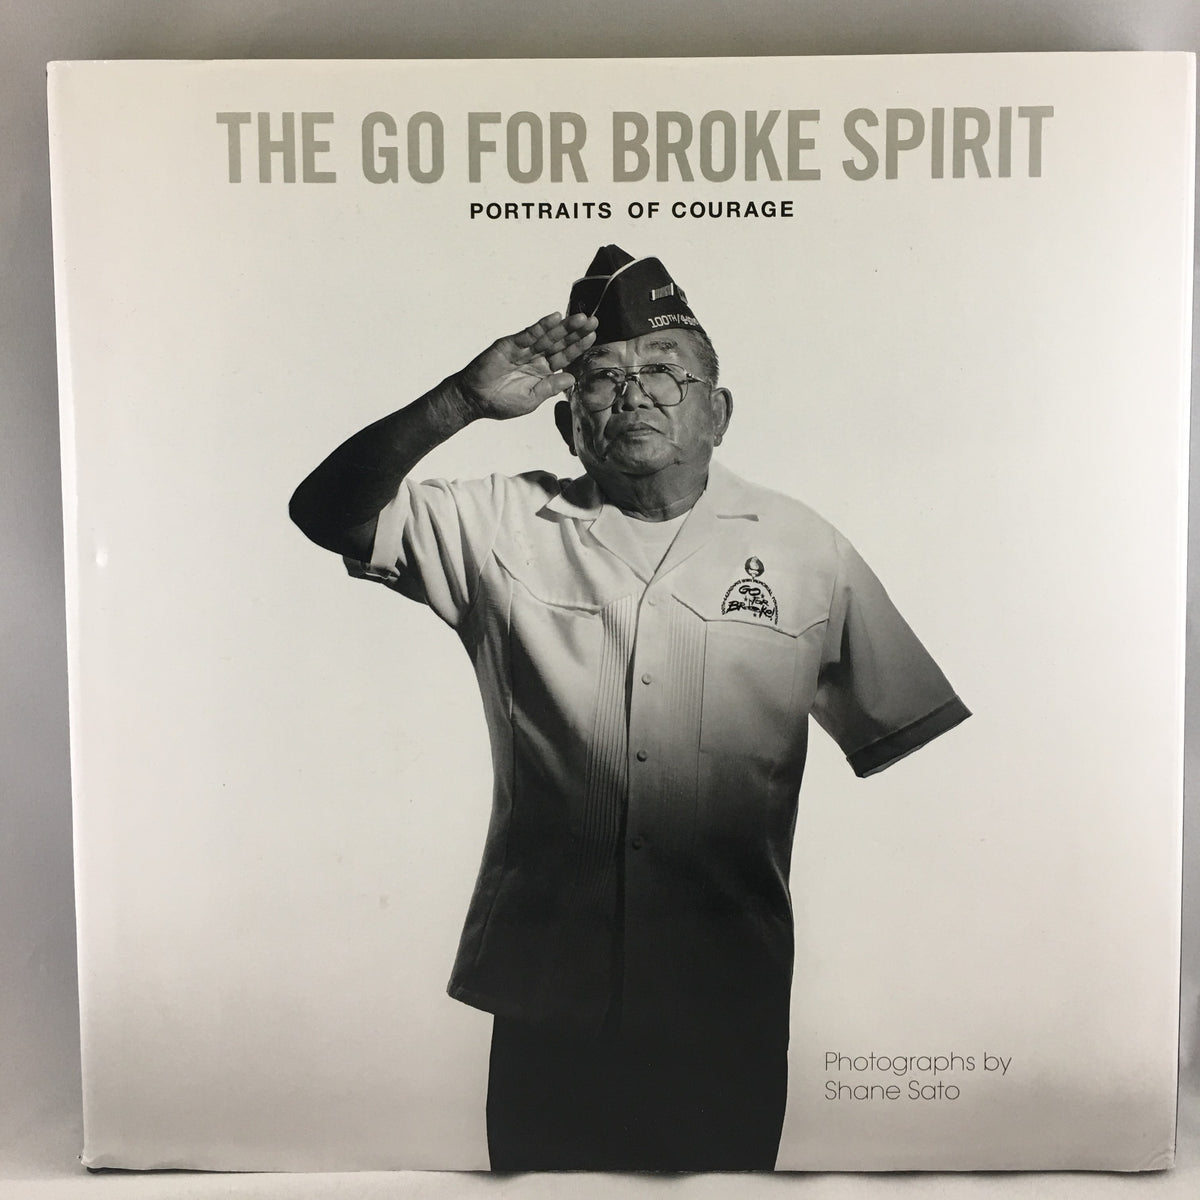 The Go For Broke Spirit: Portraits of Courage